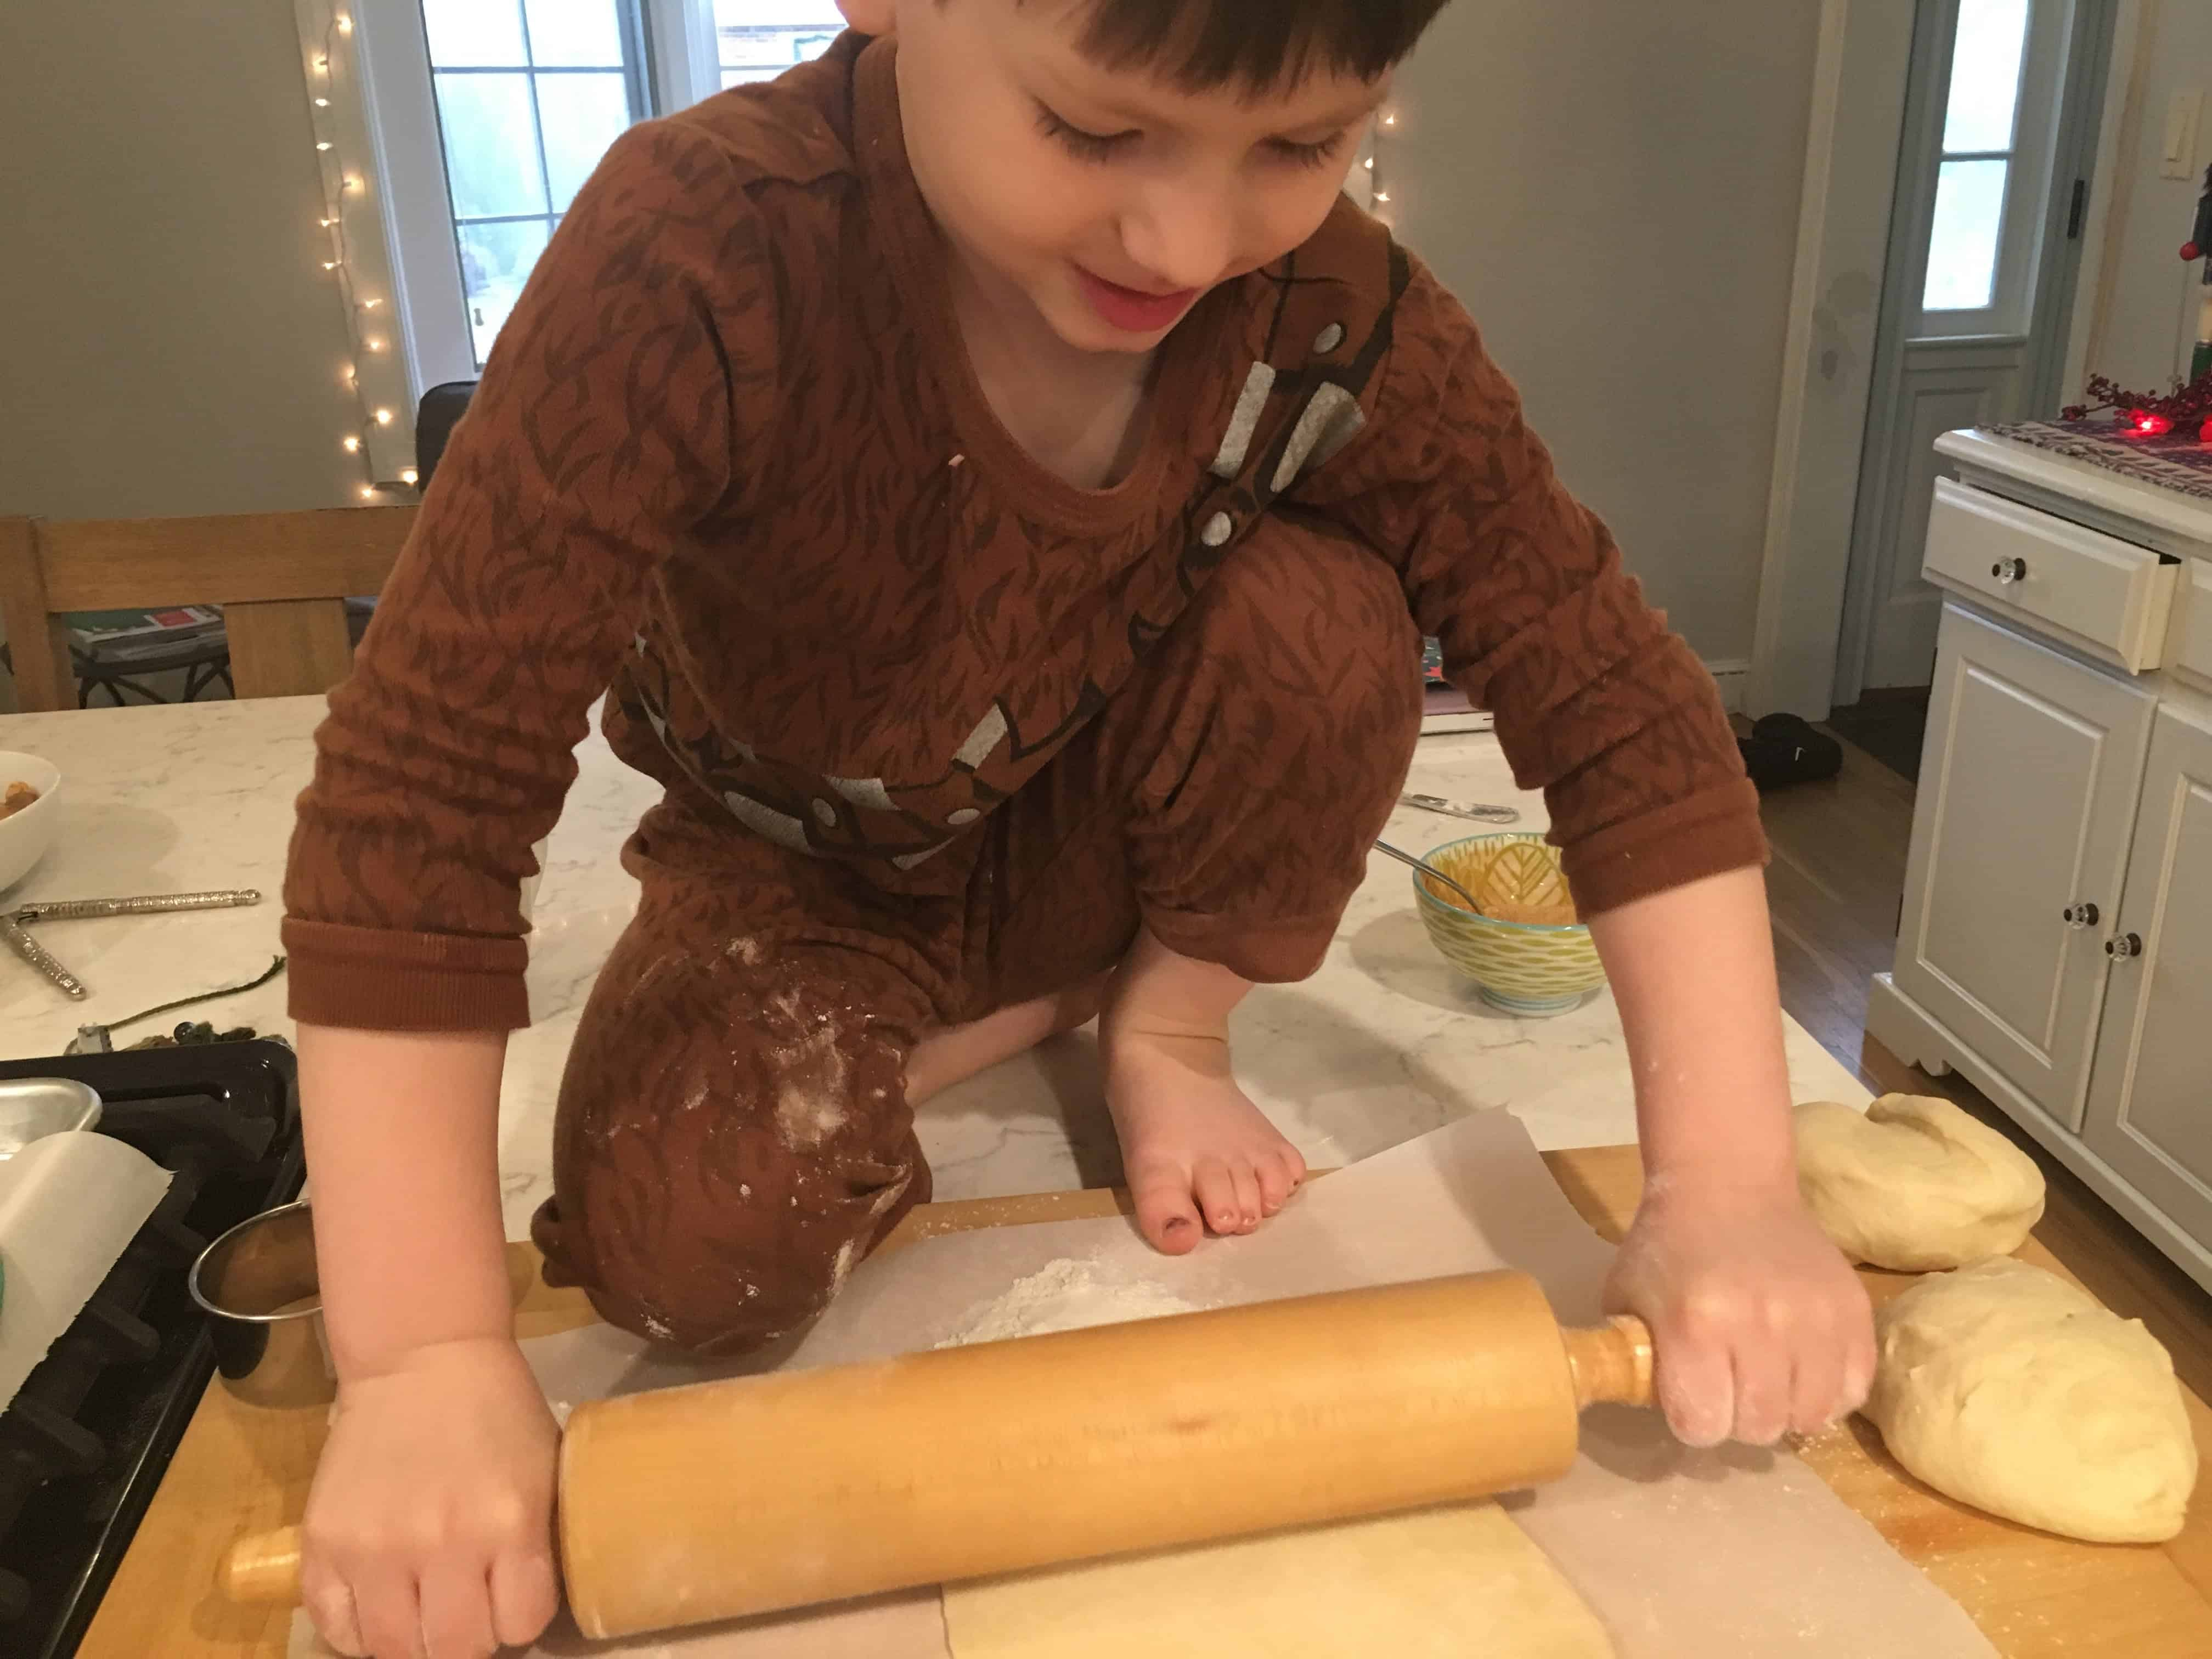 boy on a table rolling dough